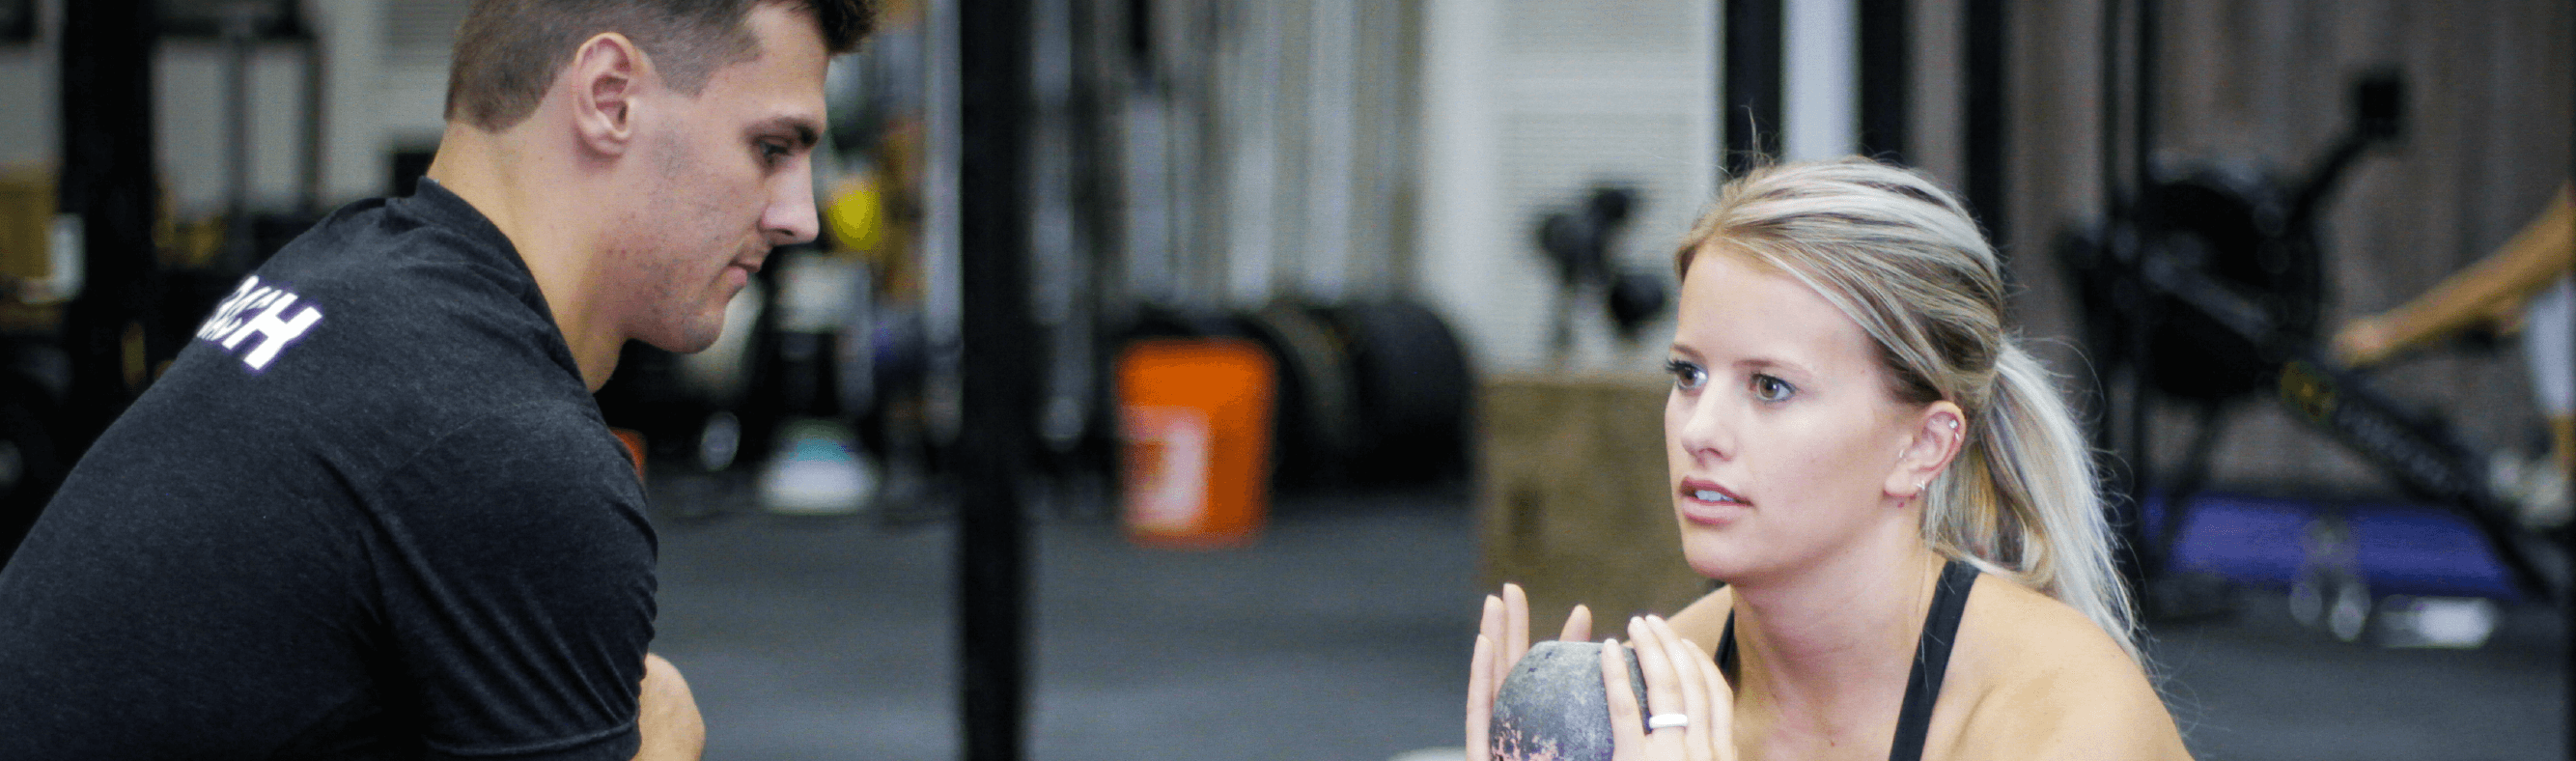 Want to Become a Professional Fitness Coach? Get There Faster